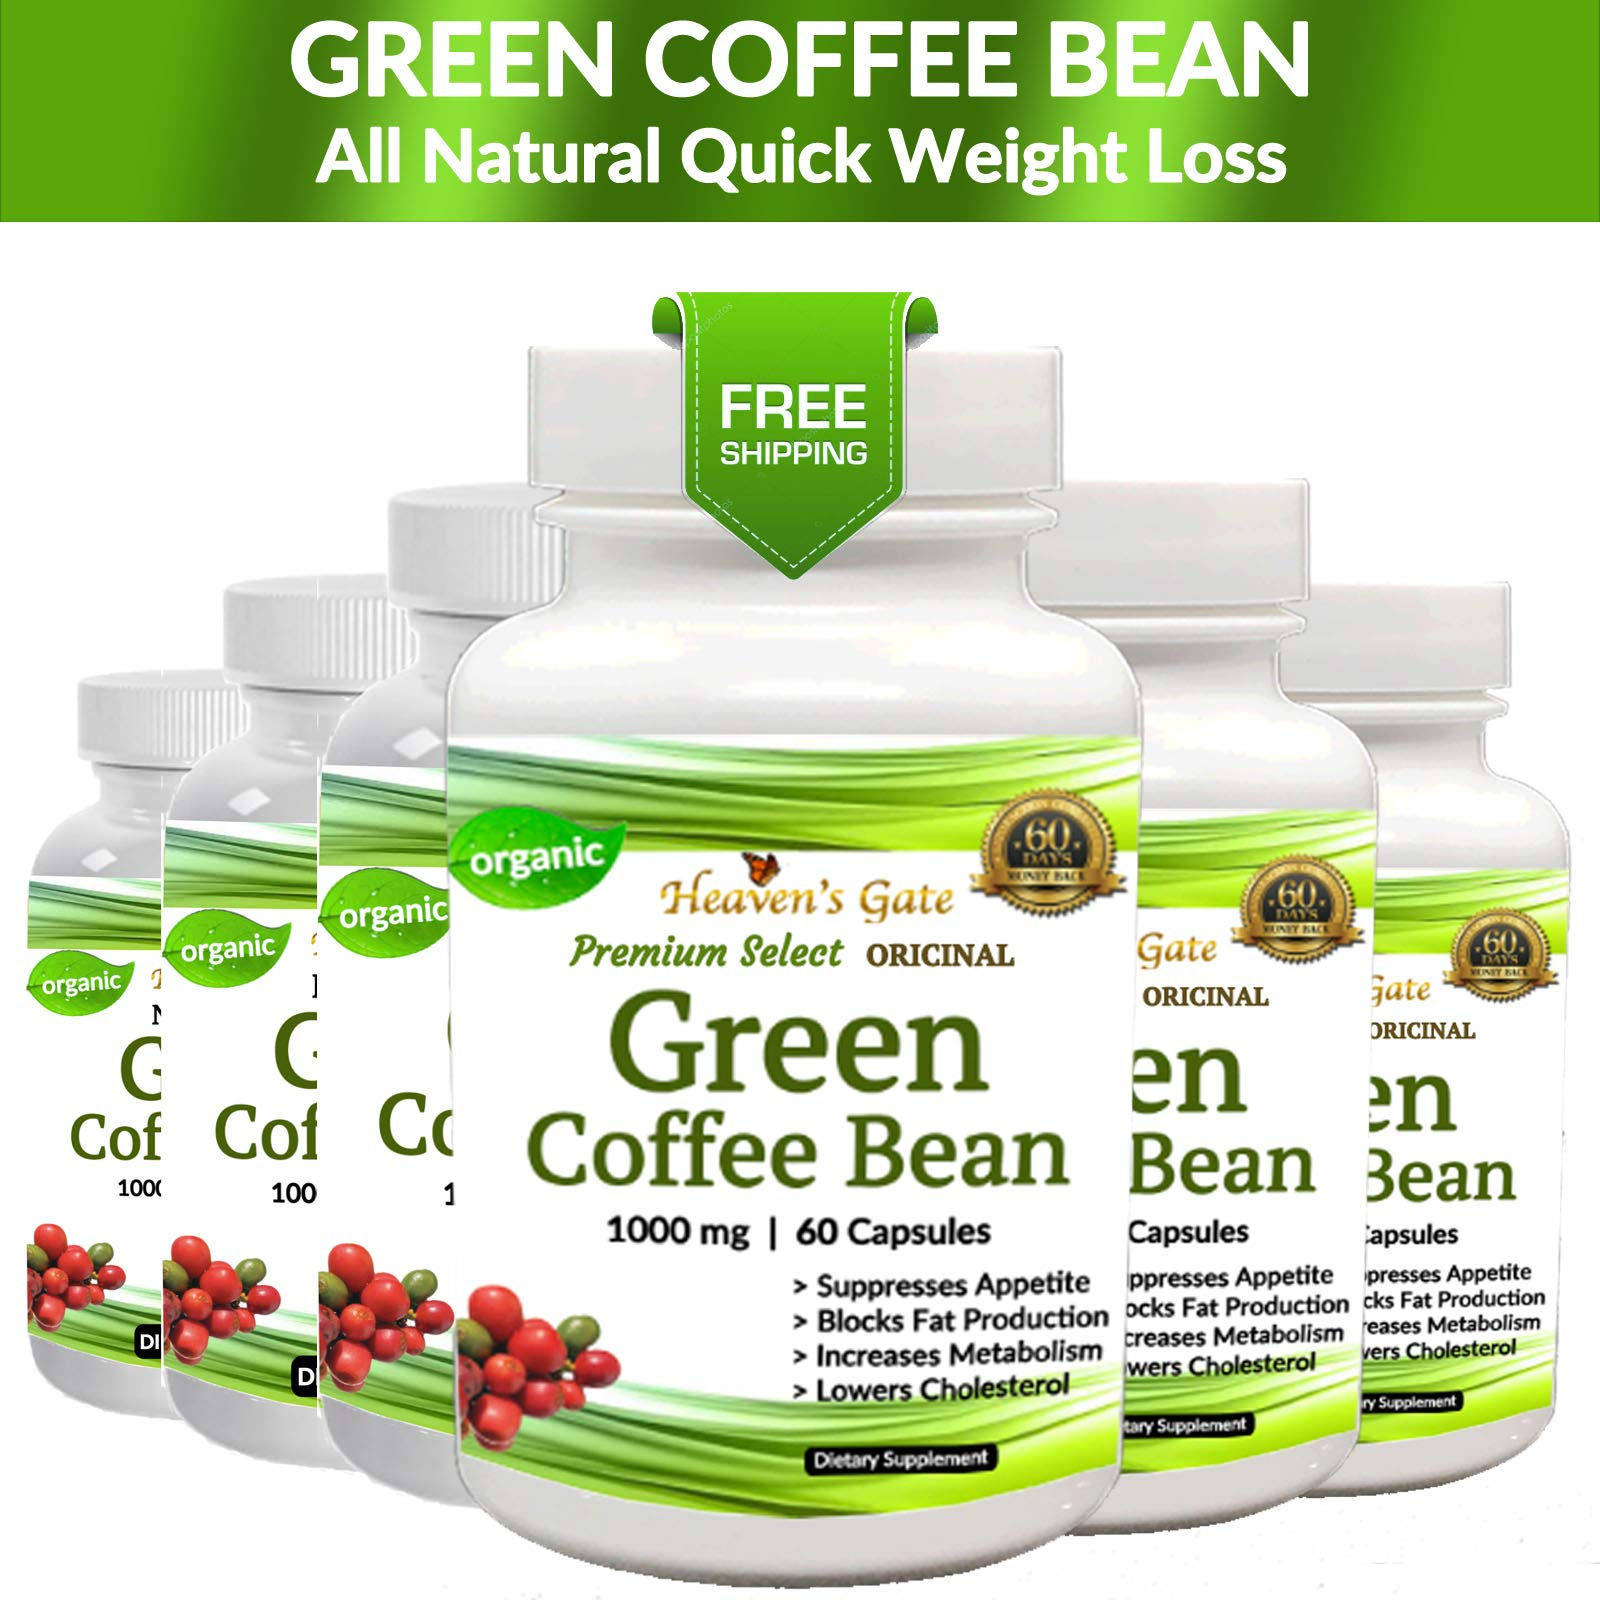 6 Green Coffee Bean - Weight Loss Supplement - Appetite SUPPRESSANT - 360 Capsules 6 Month Supply - 1000 mg - Organic - GMO and Gluten Free - 100% Pure - Fast Weight Loss by Affordable Natural Health